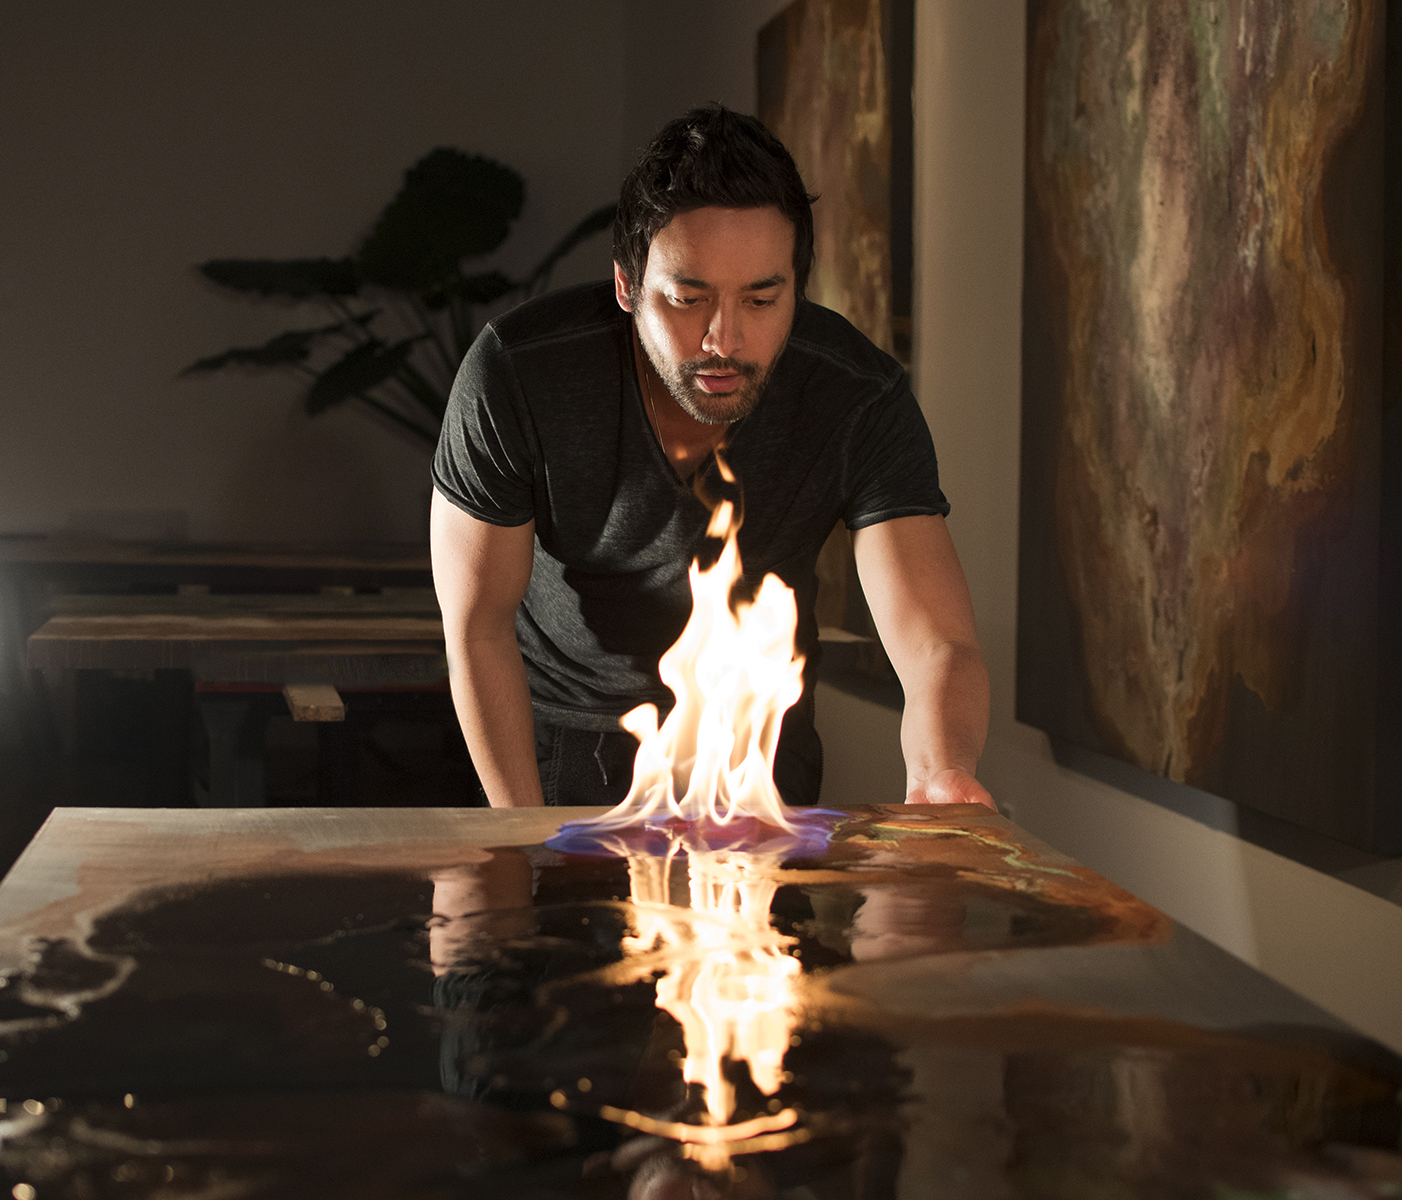 New UGallery artist Tobias Tovera using fire to create his artwork in his studio.